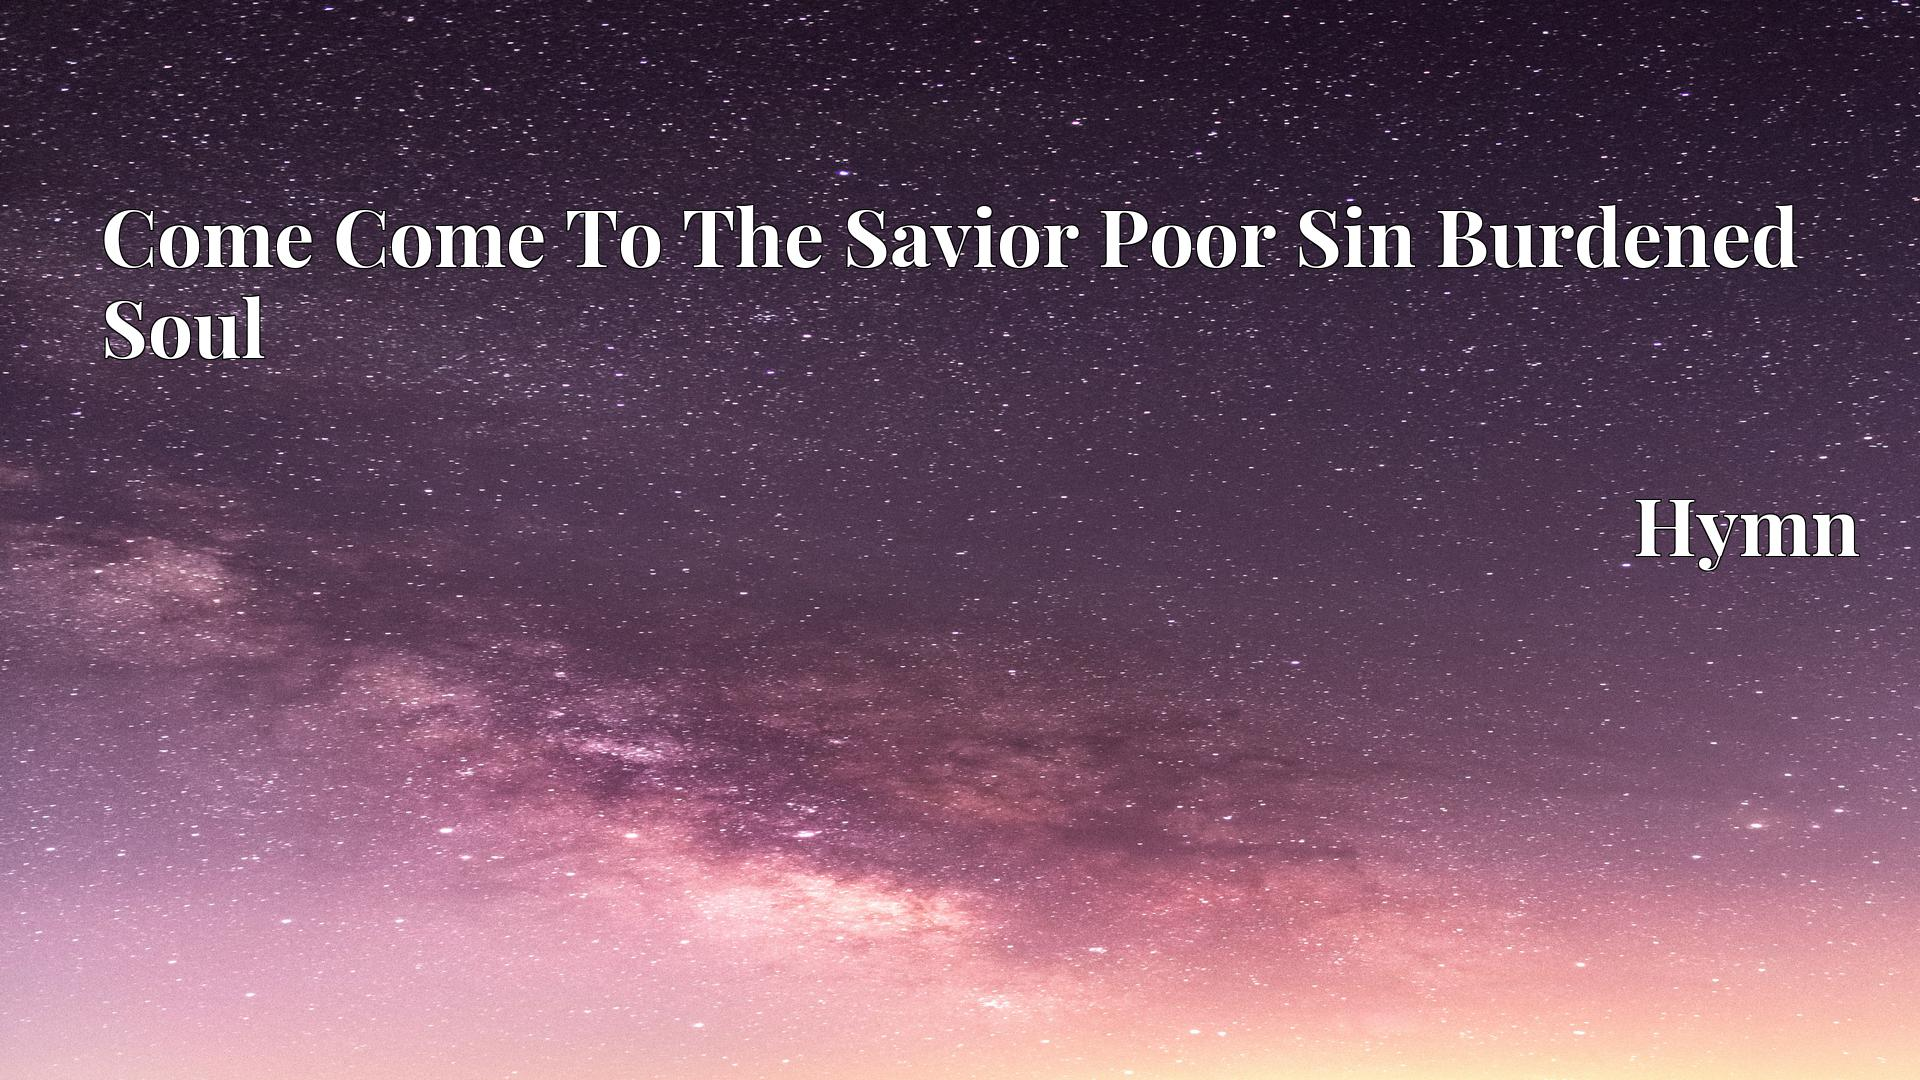 Come Come To The Savior Poor Sin Burdened Soul - Hymn